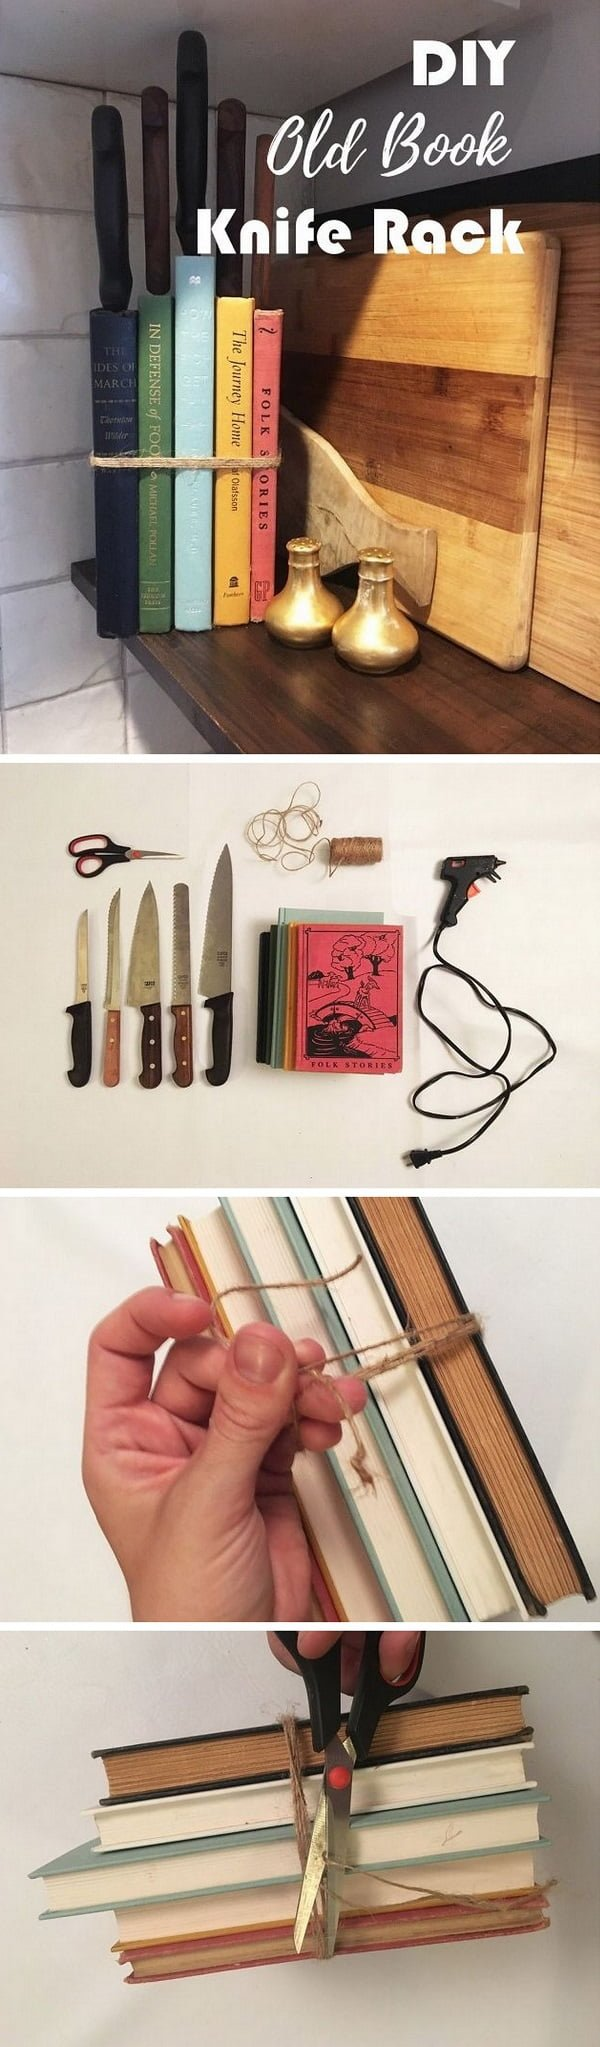 Check out this easy idea on how to make a #DIY old book knife rack #kitchen #homedecor on a #budget #crafts